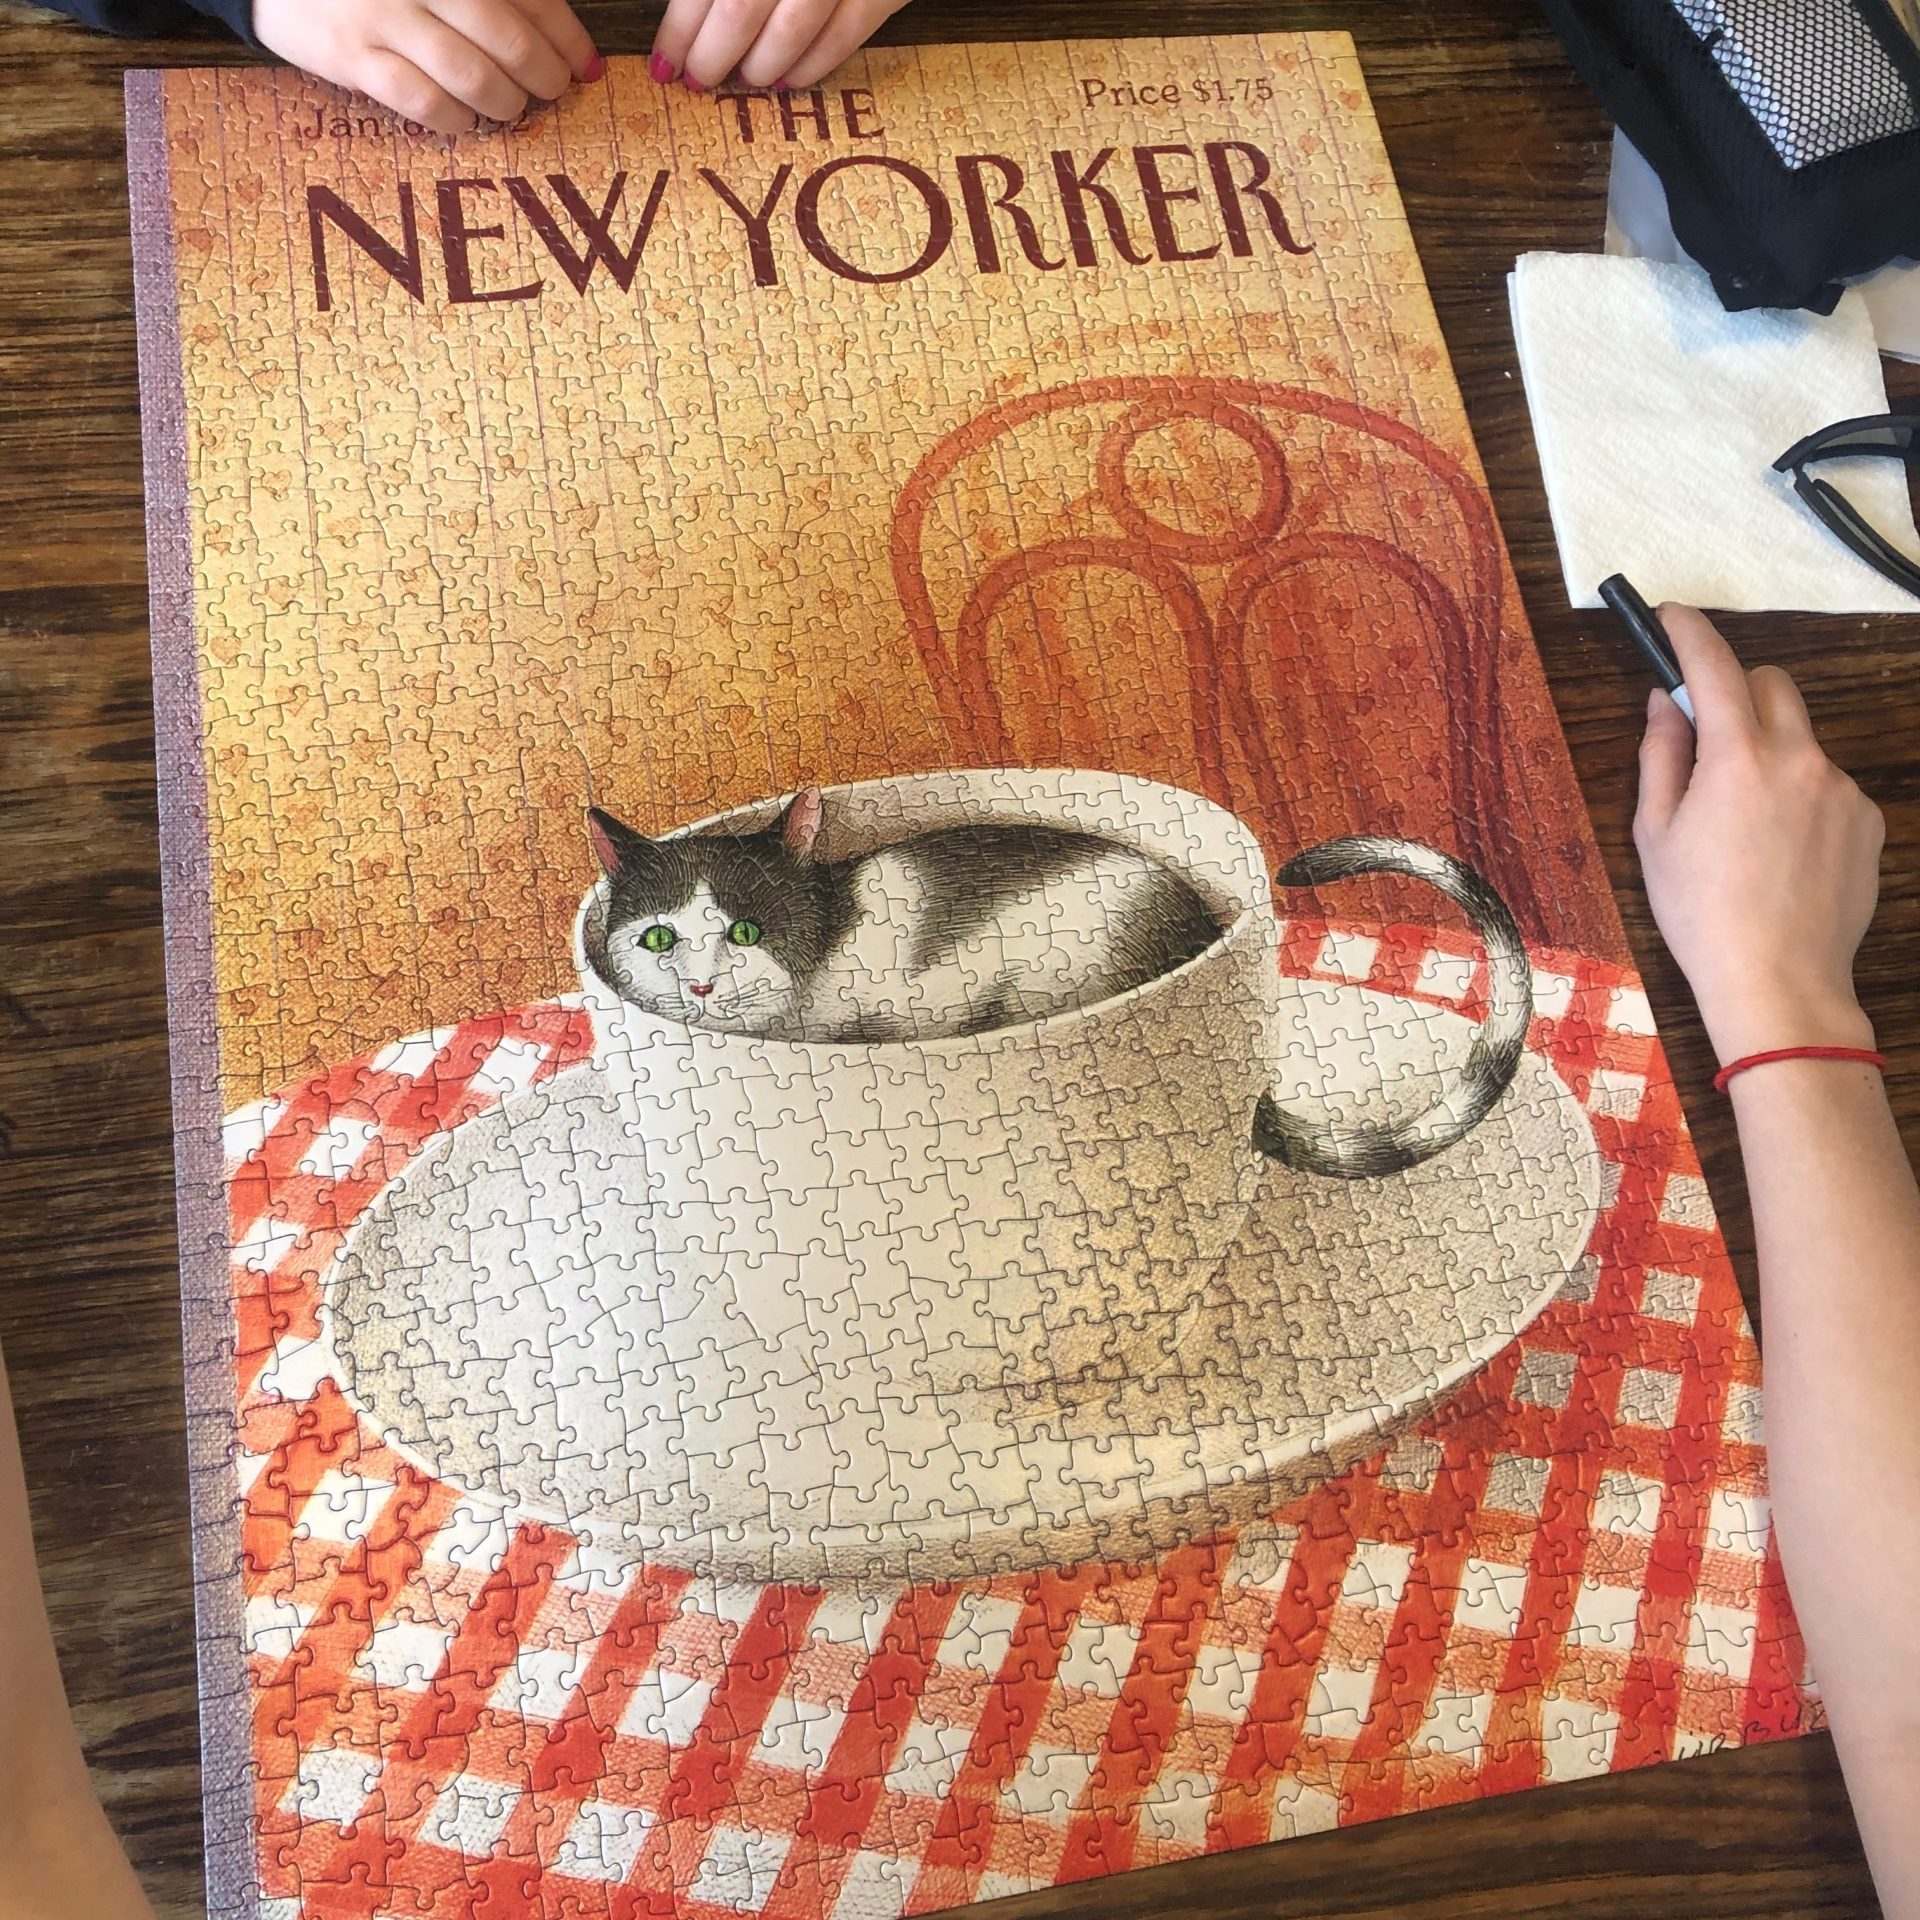 New Yorker Cover Puzzle